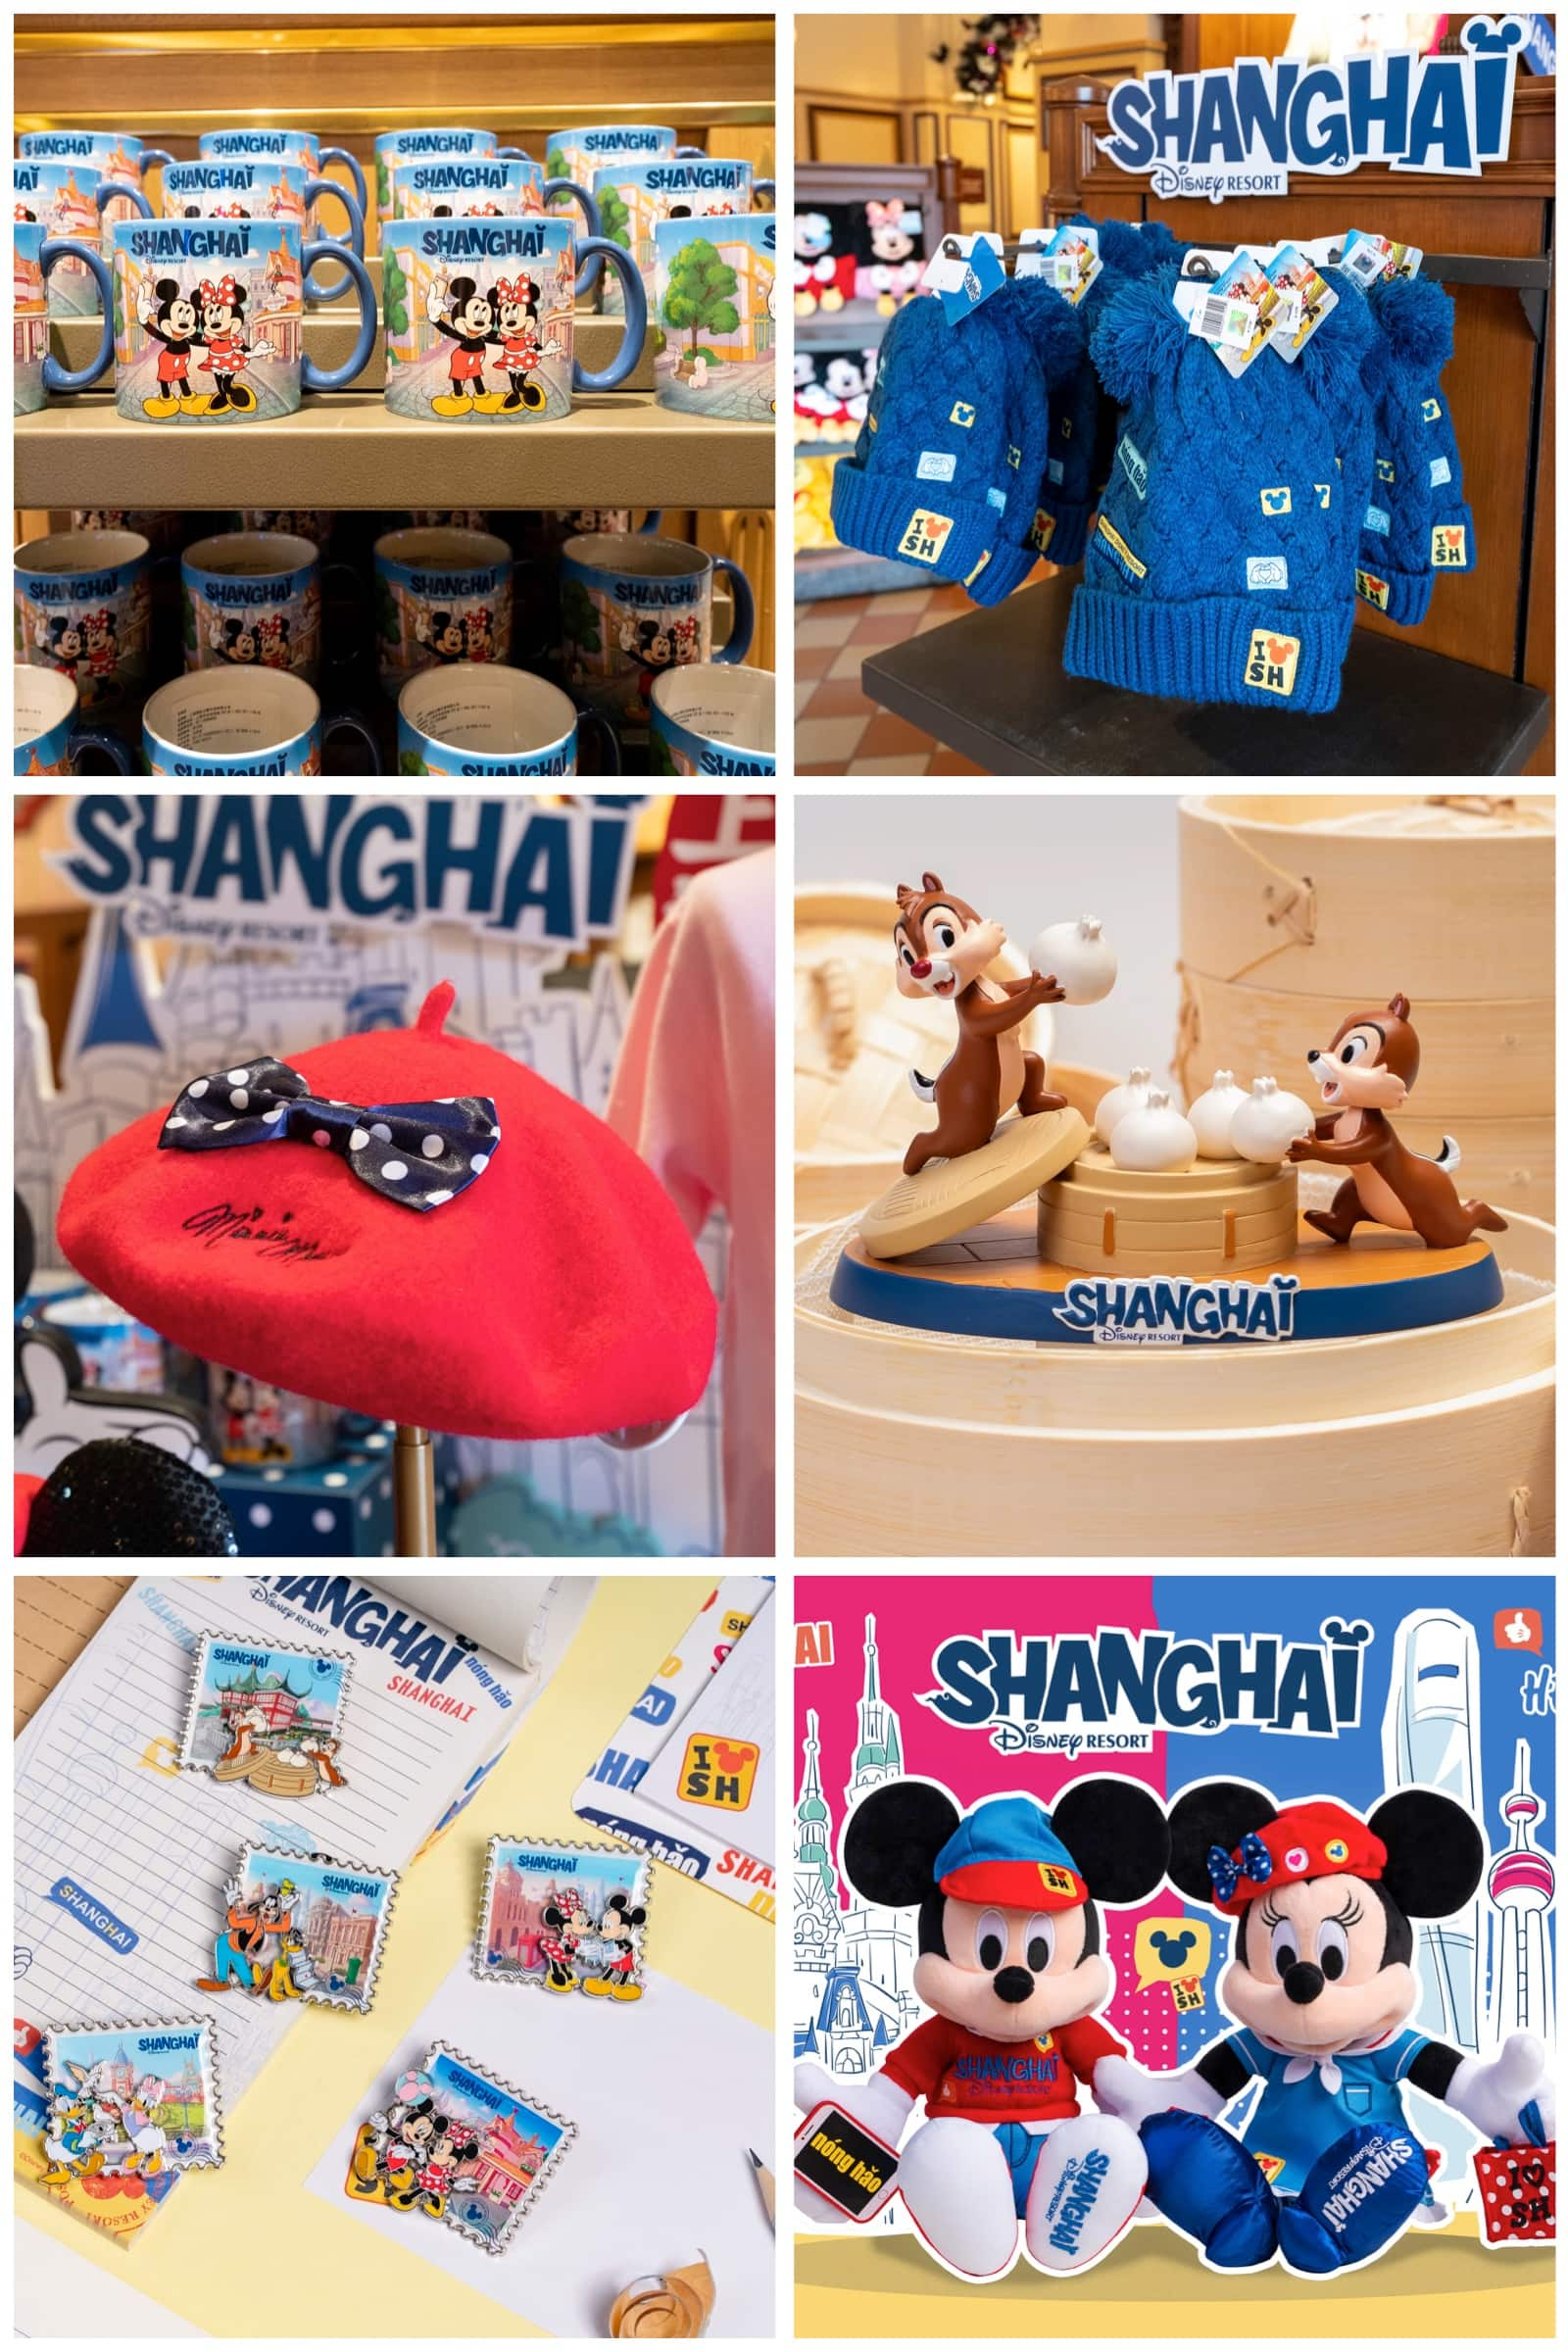 'Mickey in Shanghai' Collection